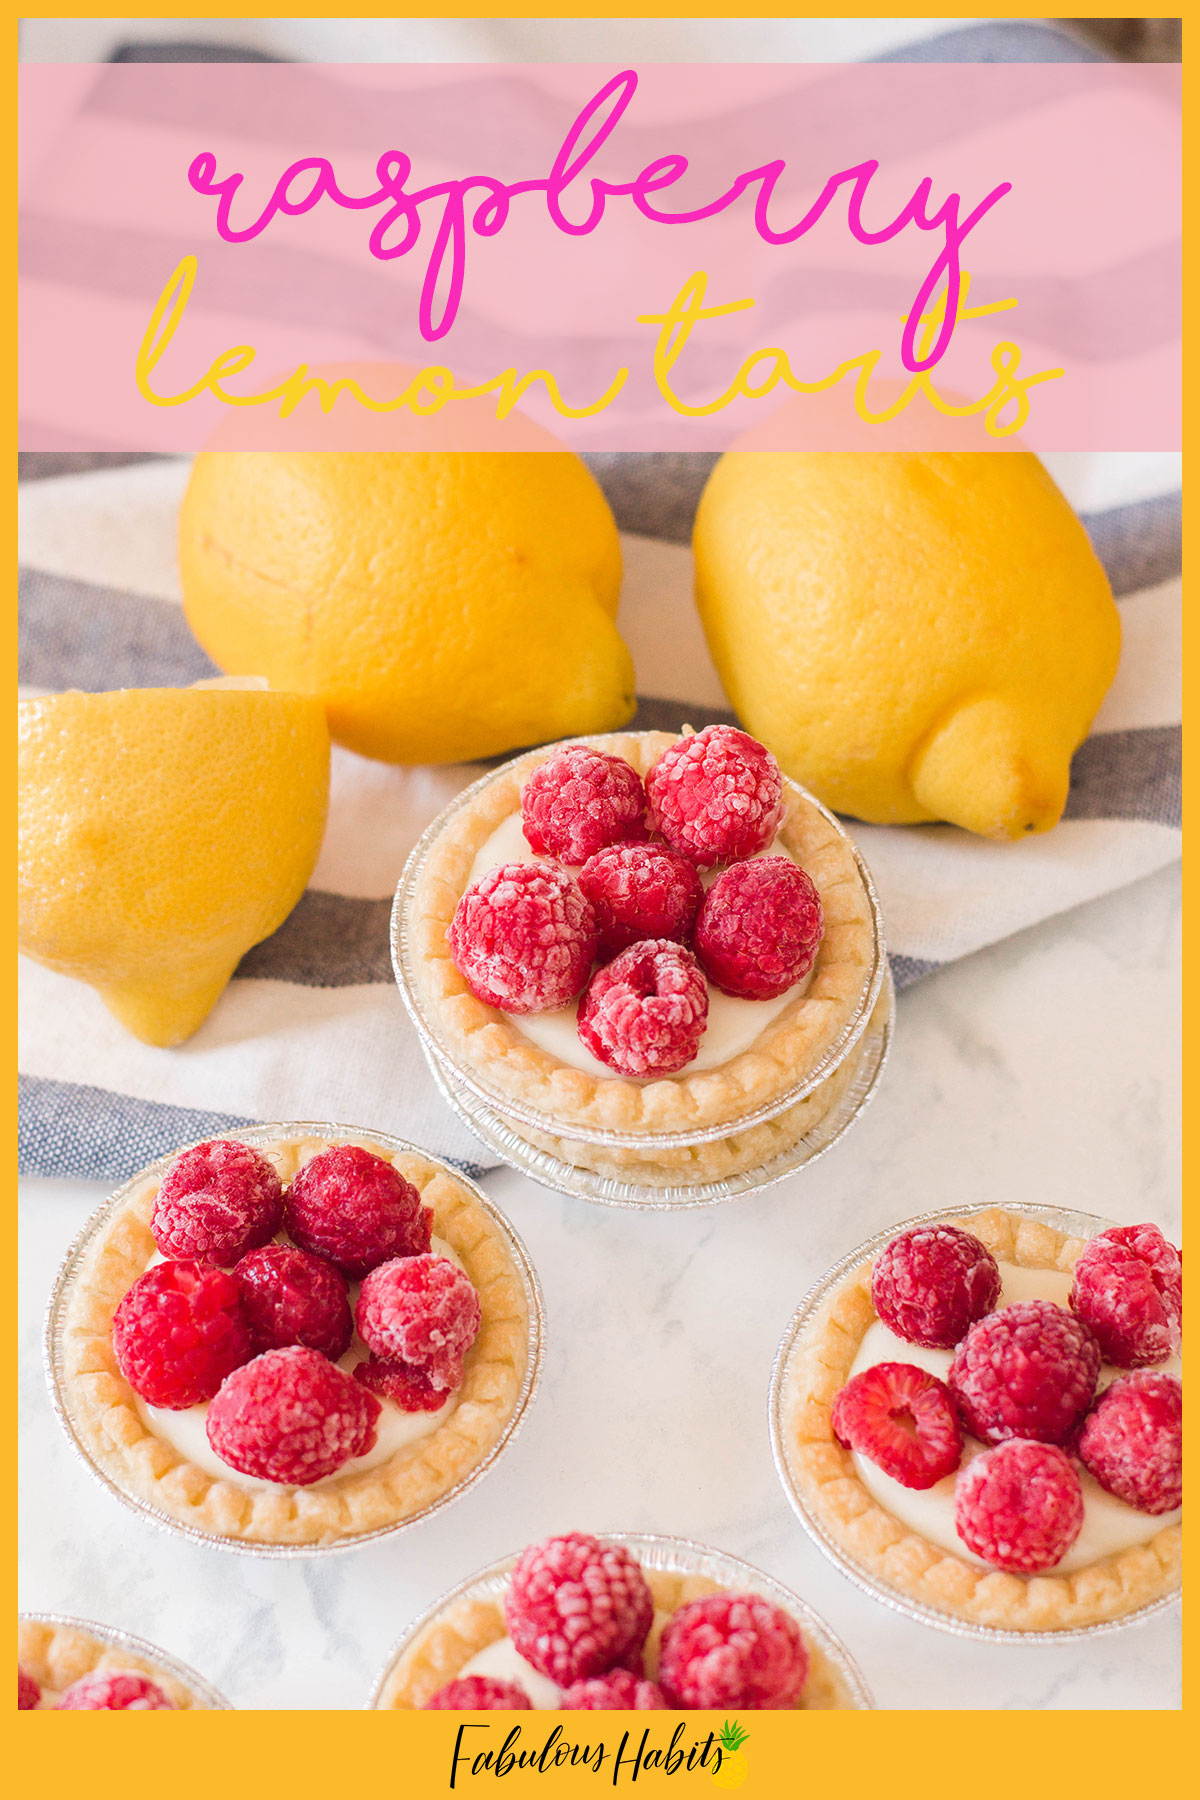 How stinking cute are these raspberry lemon tarts? You can make them yourself with my easy to follow recipe and directions! Mini pies for the win! #miniaturepies